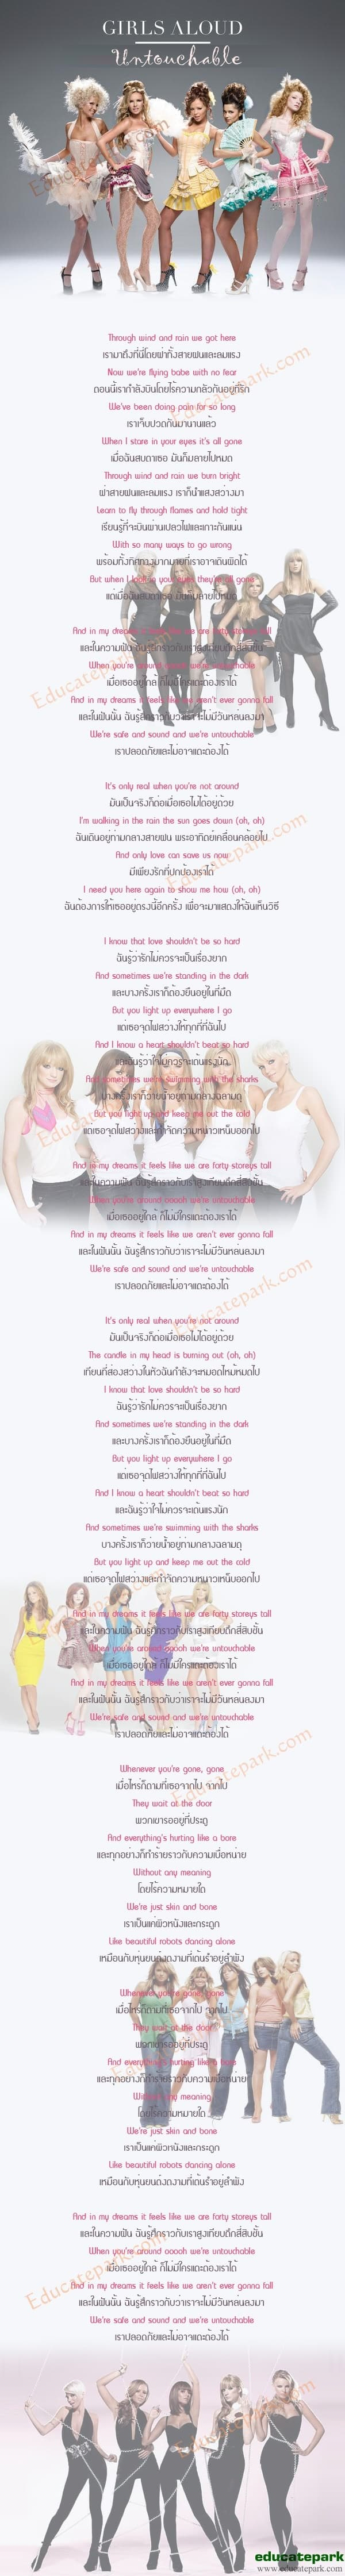 แปลเพลง Untouchable - Girls Aloud